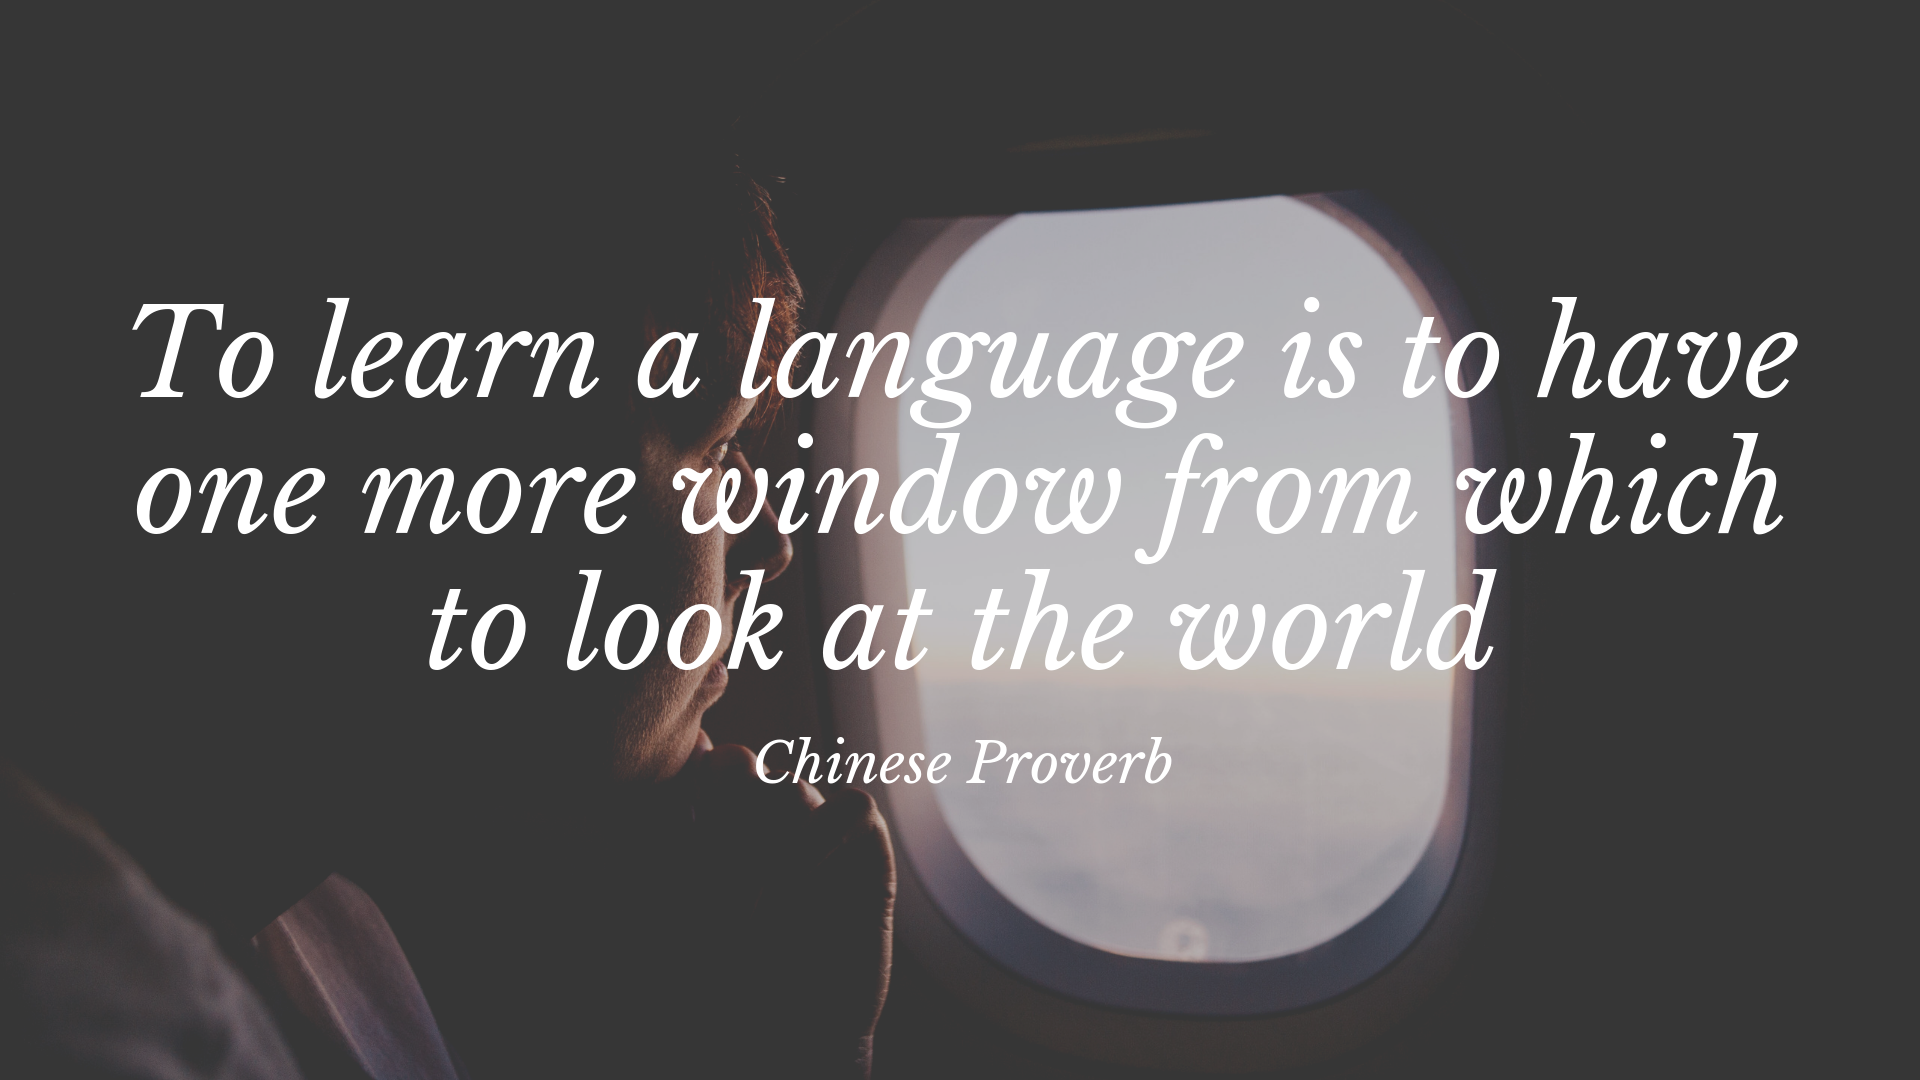 To learn a new language is to have one more window from which to look at the world. – Chinese Proverb